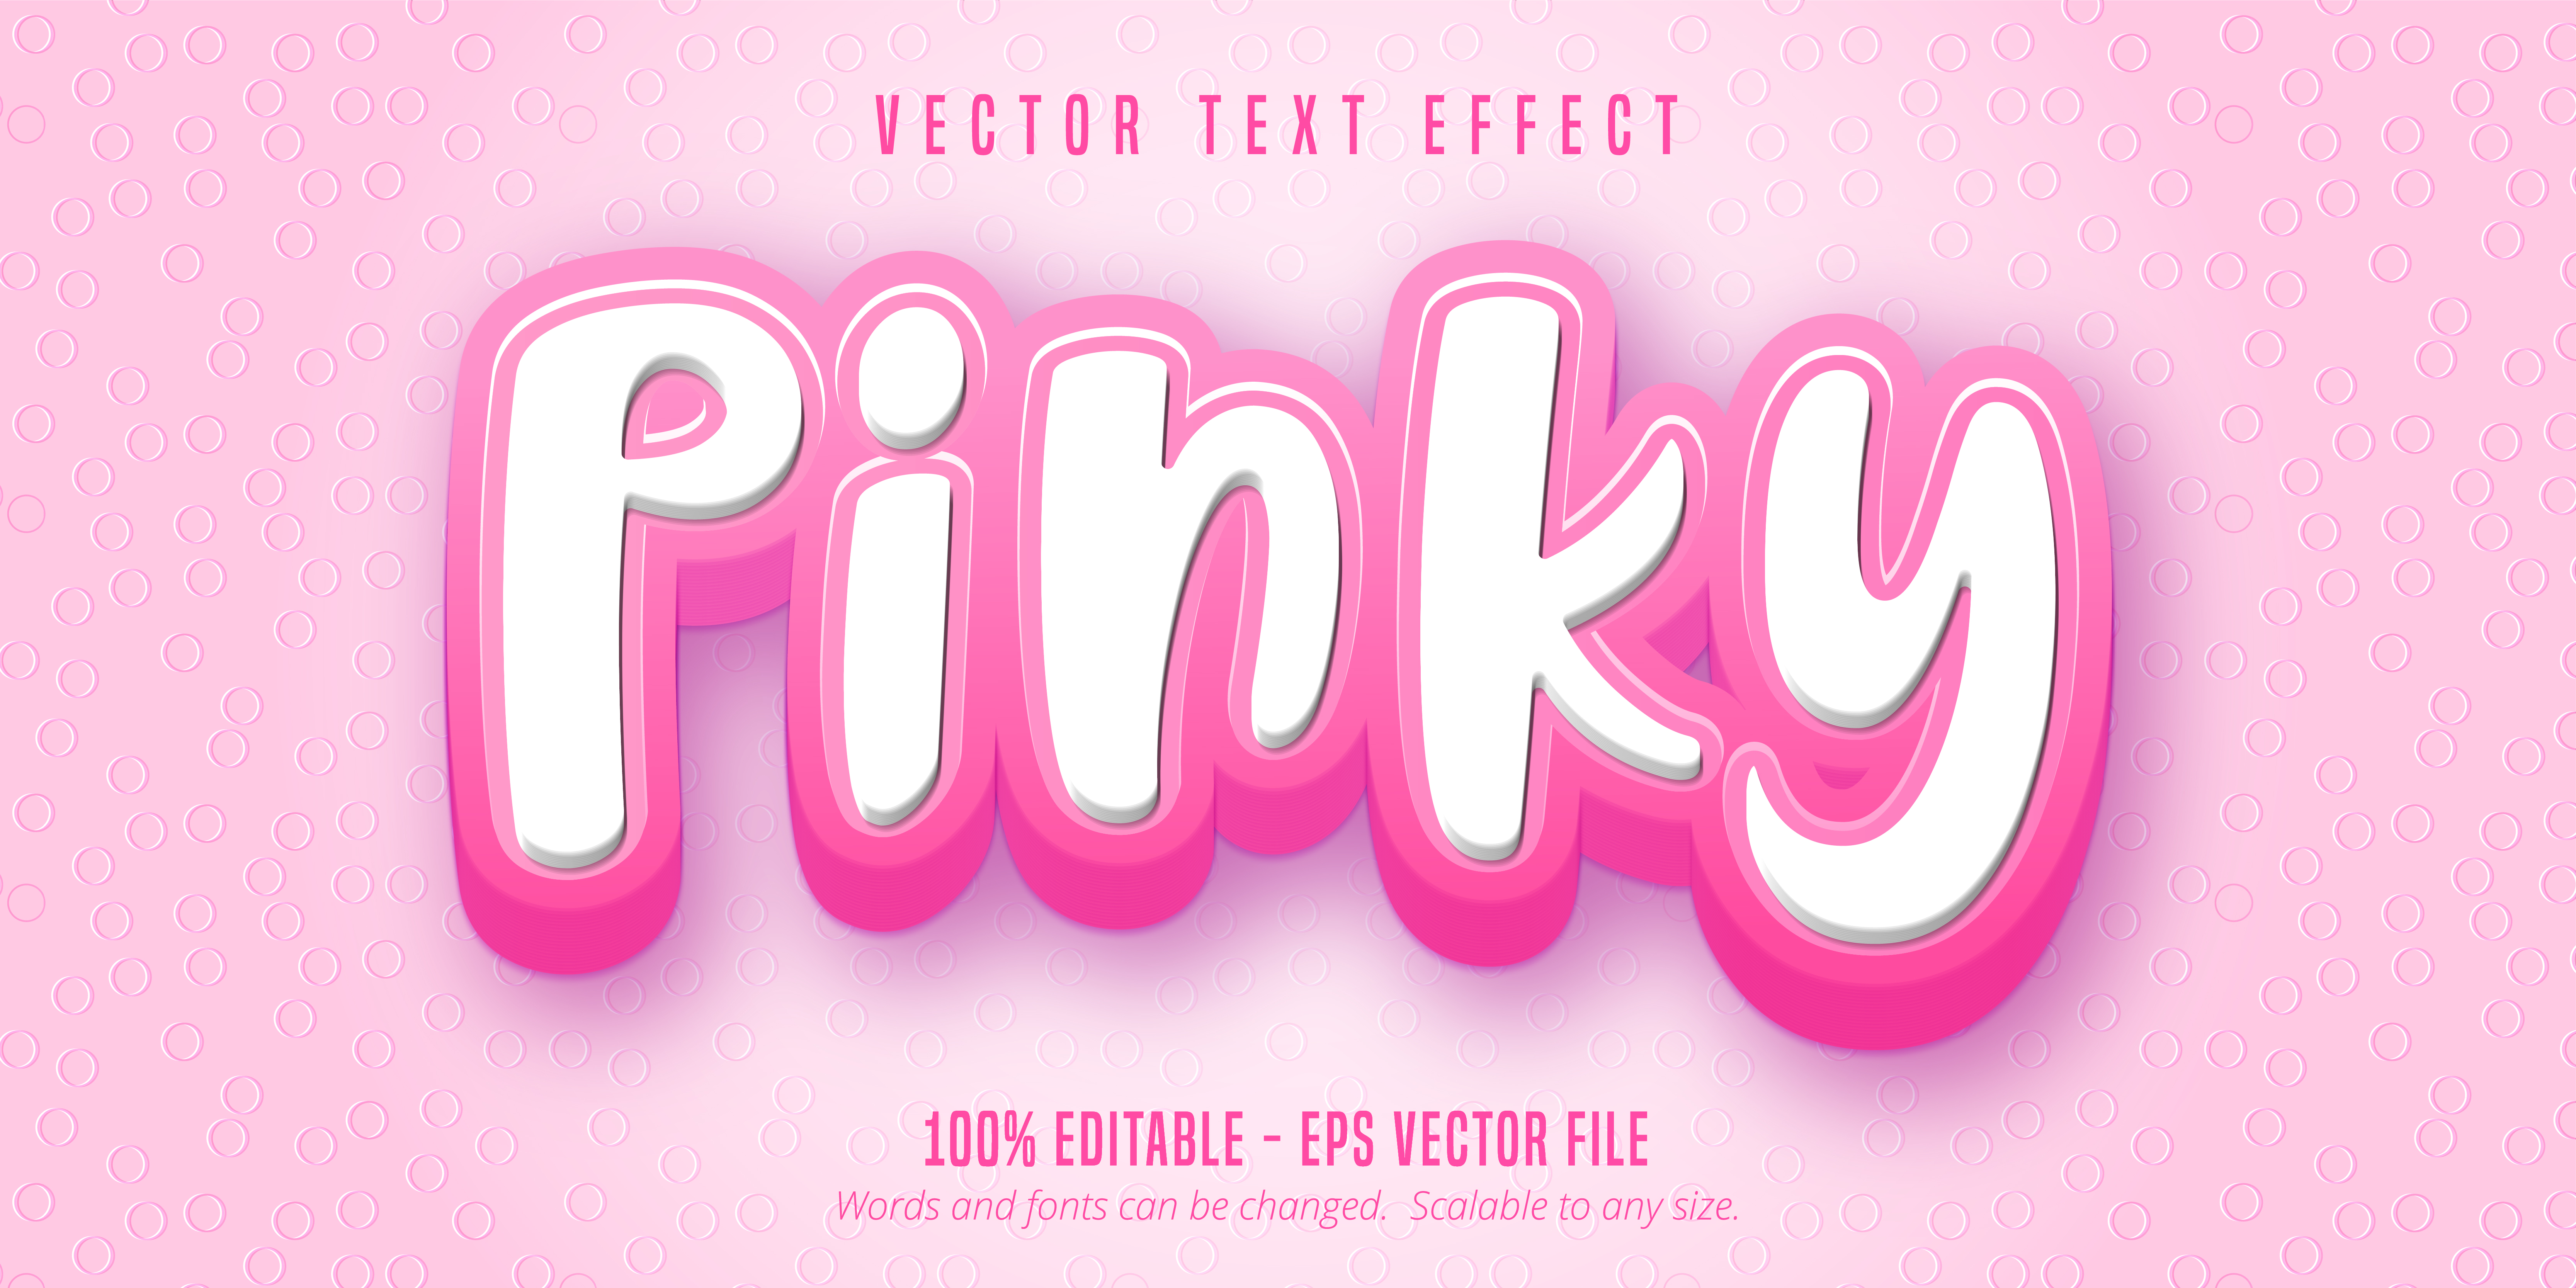 Pinky Text, Cartoon Style Text Effect